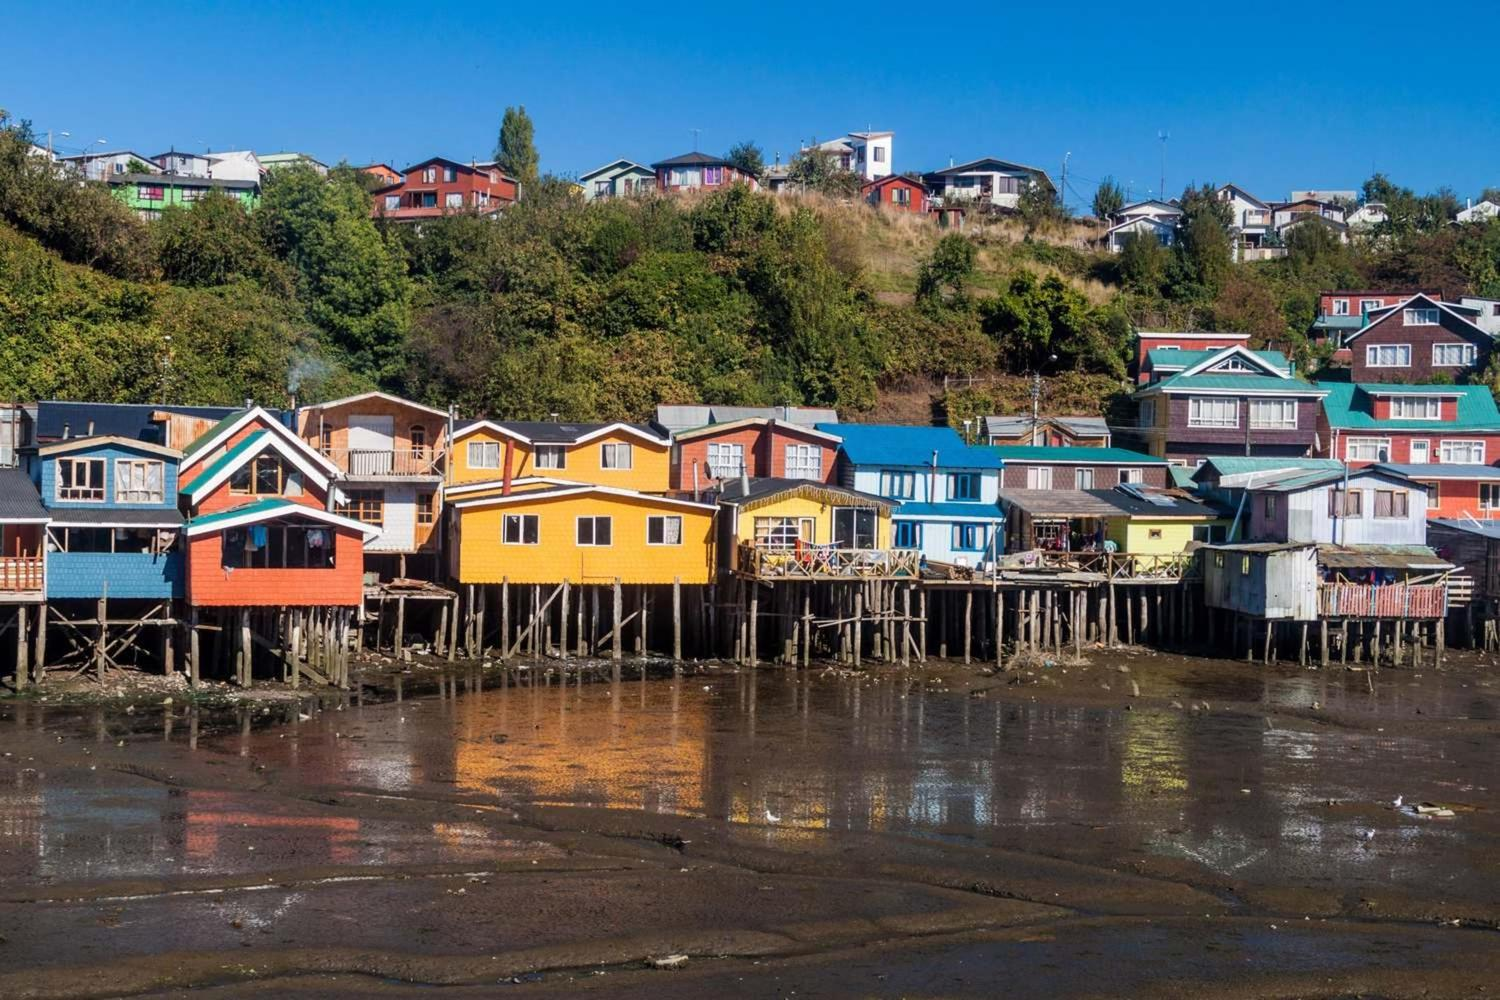 Palafitos stilt houses in Chiloe island's Castro